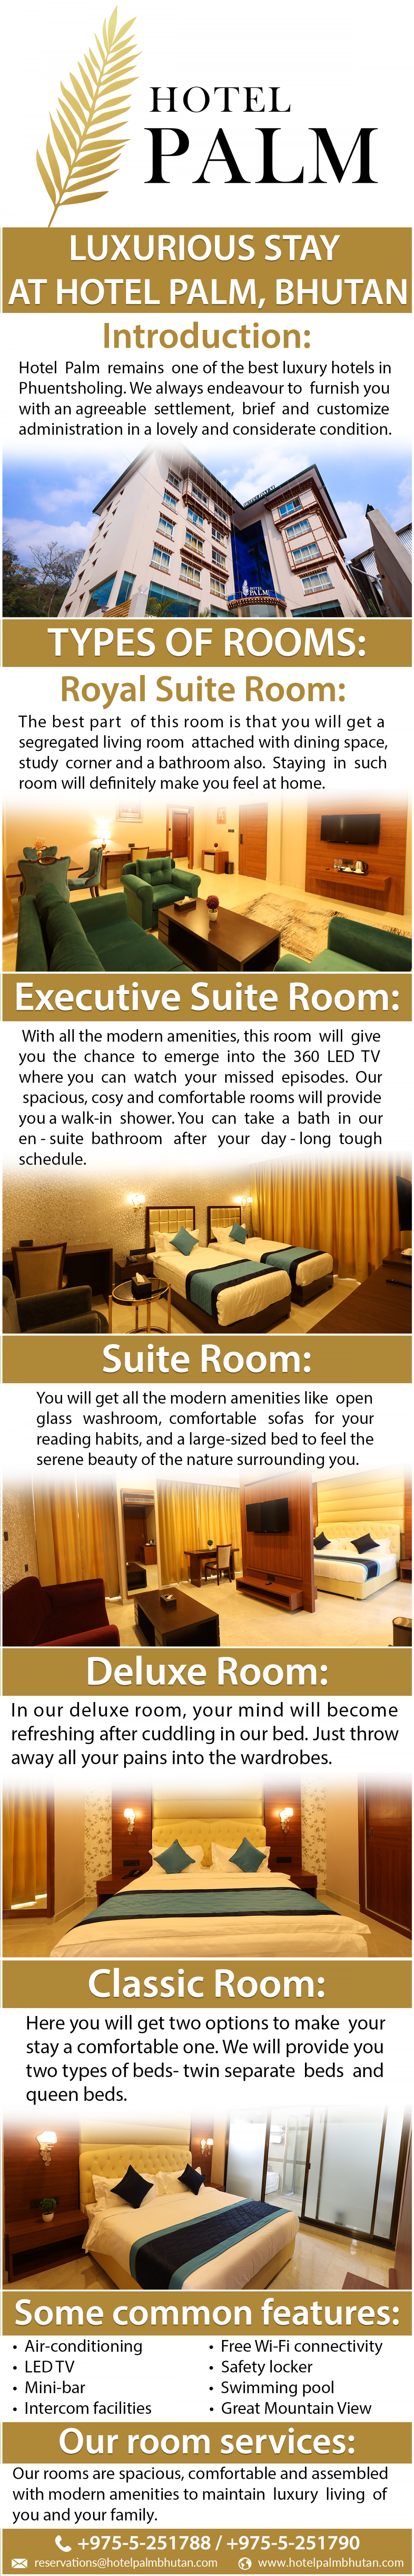 Luxurious Stay at Hotel Palm Infographic